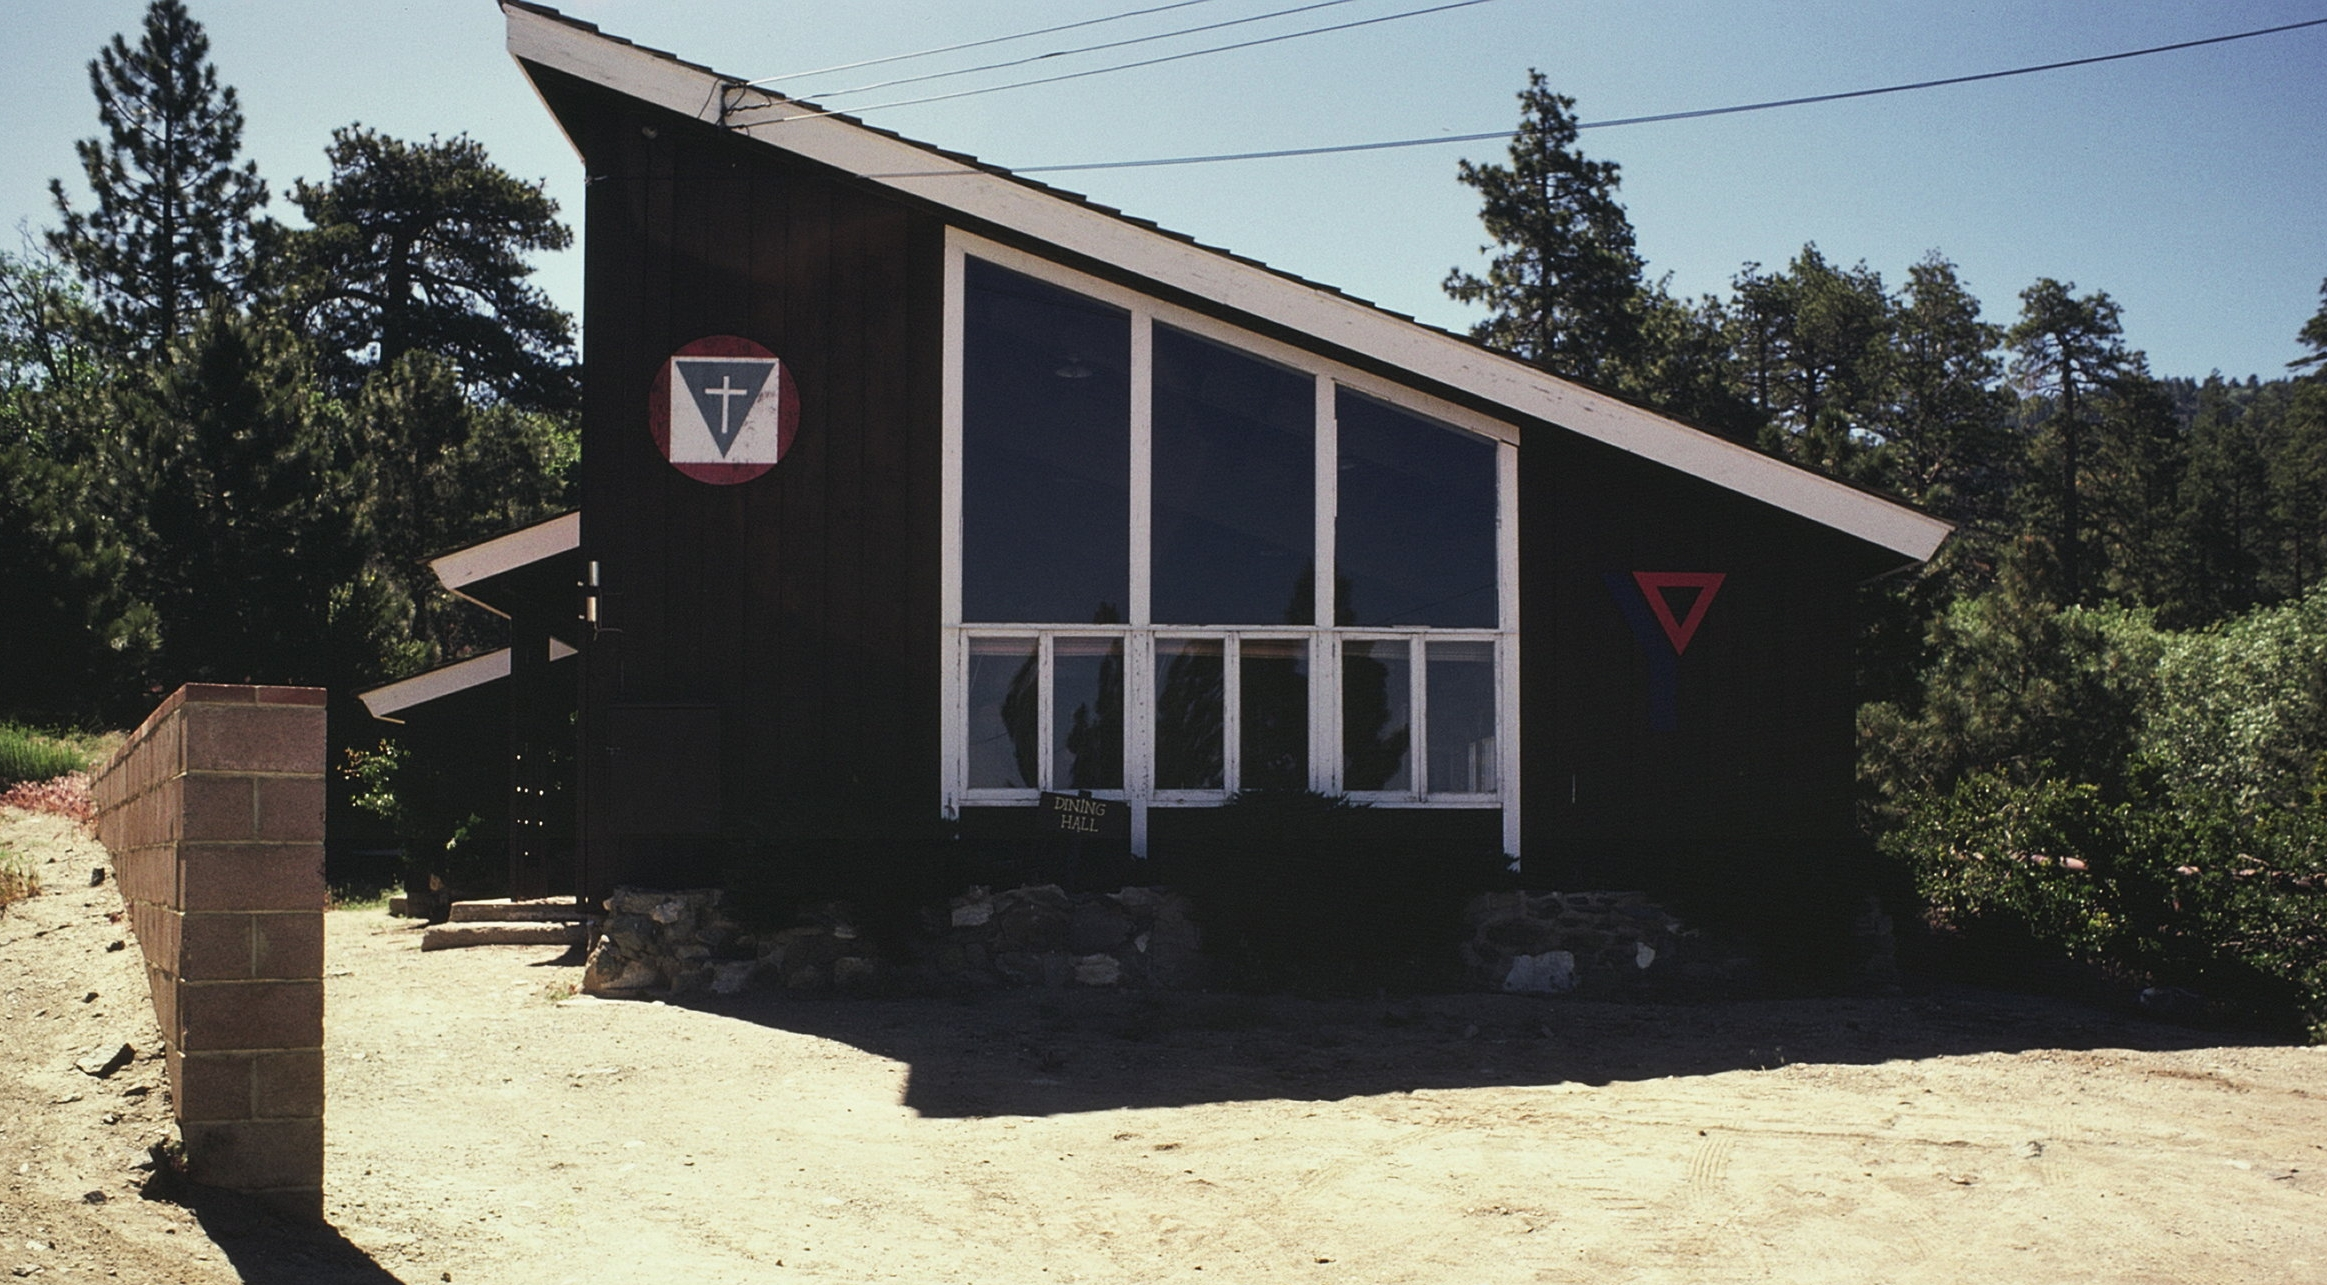 The YMCA Big Pines Lodge during 1977-1978 prior to renovations for AYF Camp Big Pines